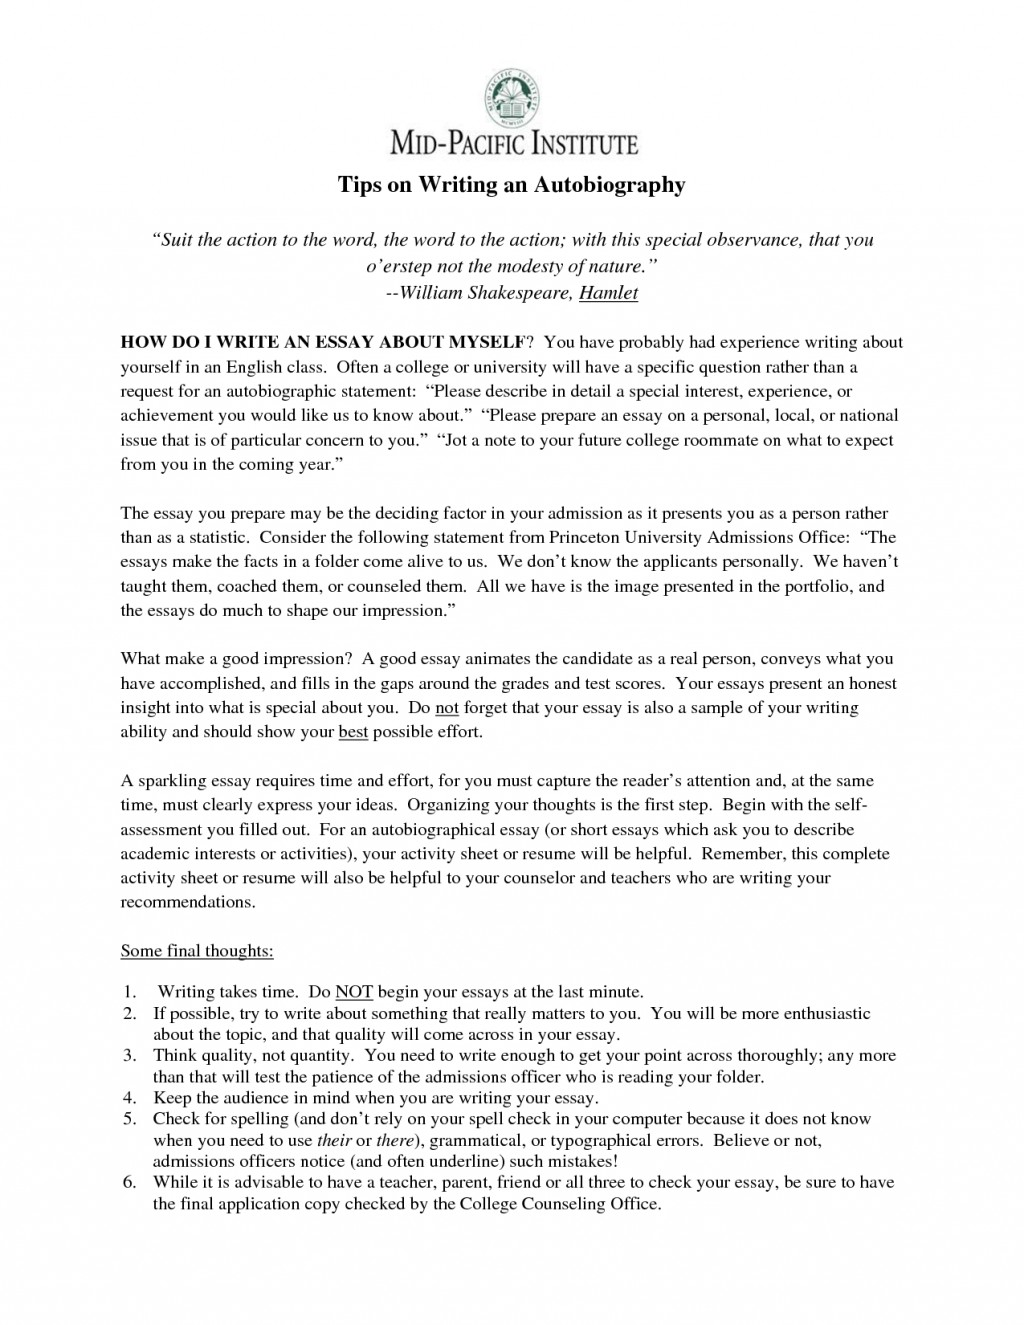 012 Tips To Write Good Essay Help Me An About Myself How For Writing Persuasive With English L College Great Scholarship Narrative Sat Application Argumentative Marvelous A In Exam Large